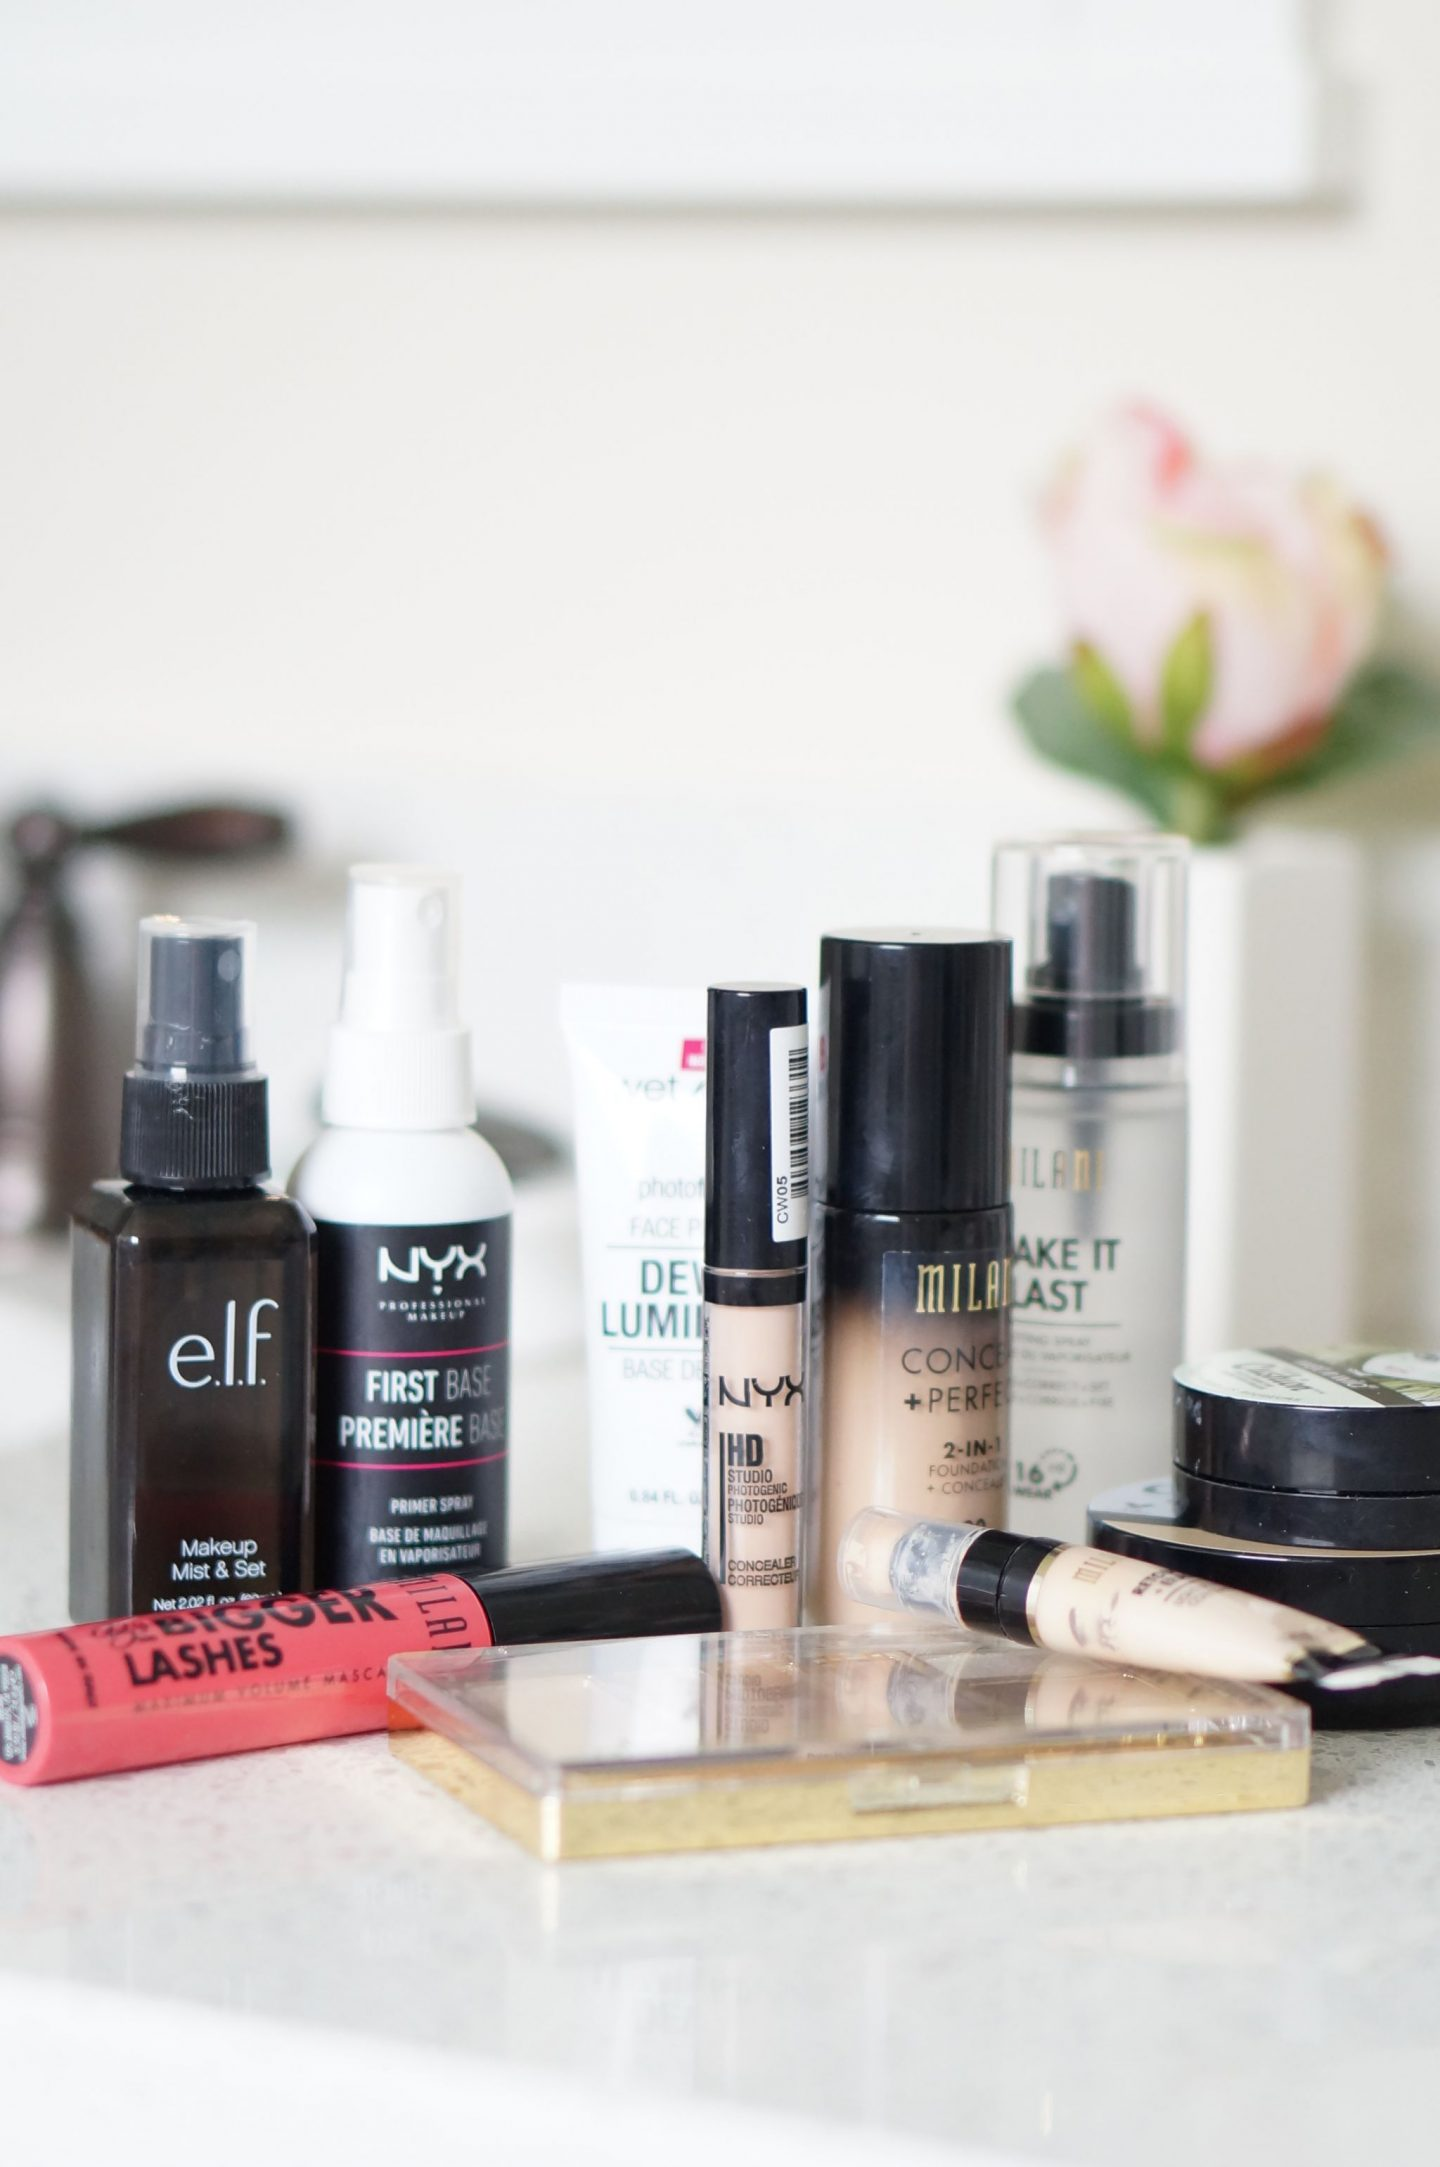 Popular North Carolina style blogger Rebecca Lately shares her favorite drugstore makeup brands. Click here for affordable makeup options!